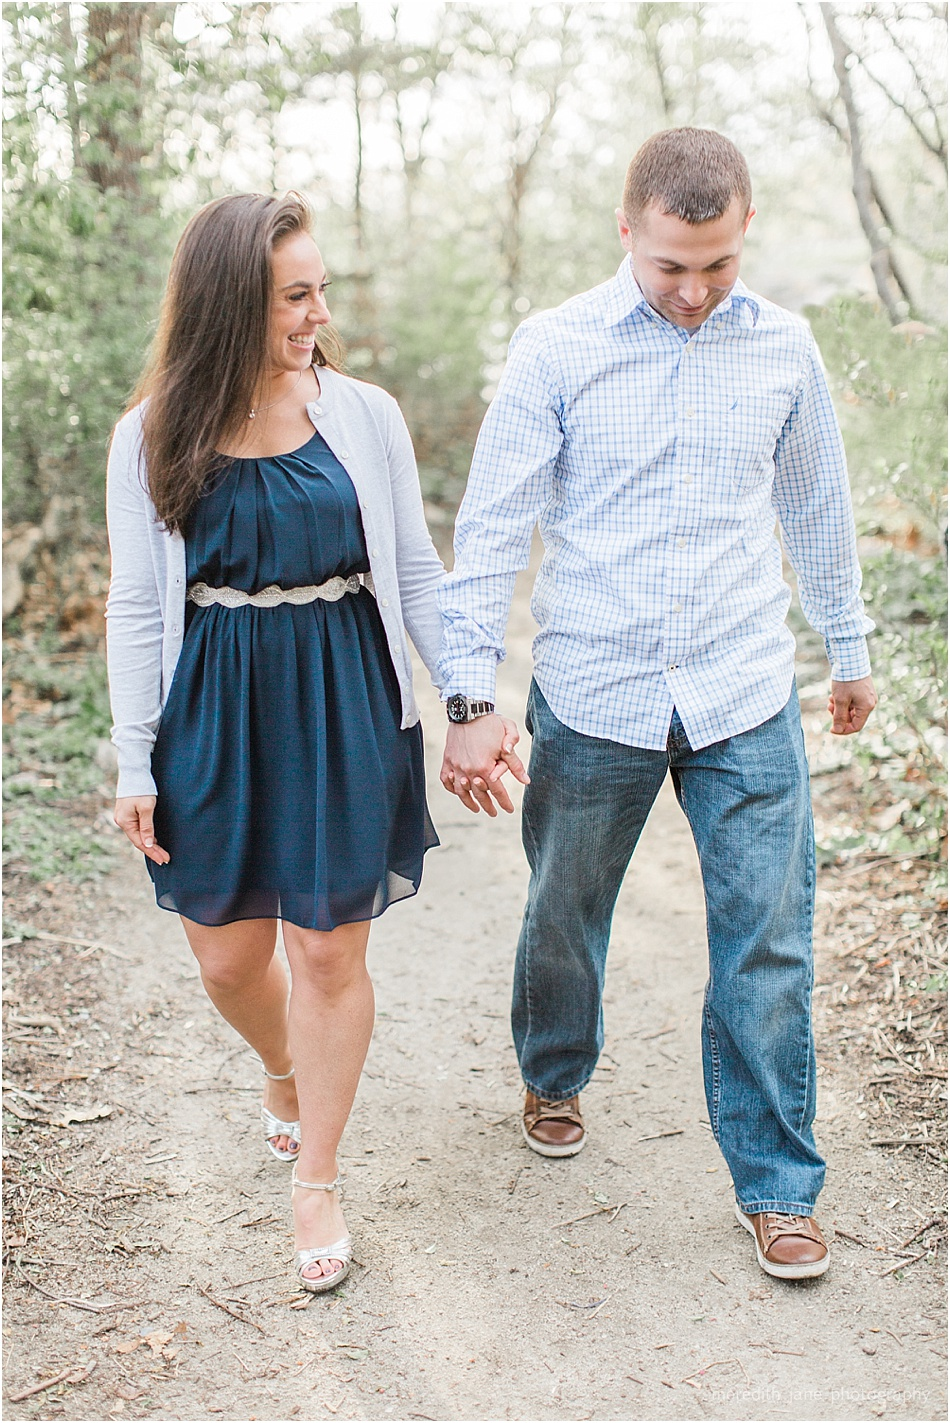 scituate_harbor_spit_engagement_session_cape_cod_boston_wedding_photographer_Meredith_Jane_Photography_photo_0088.jpg